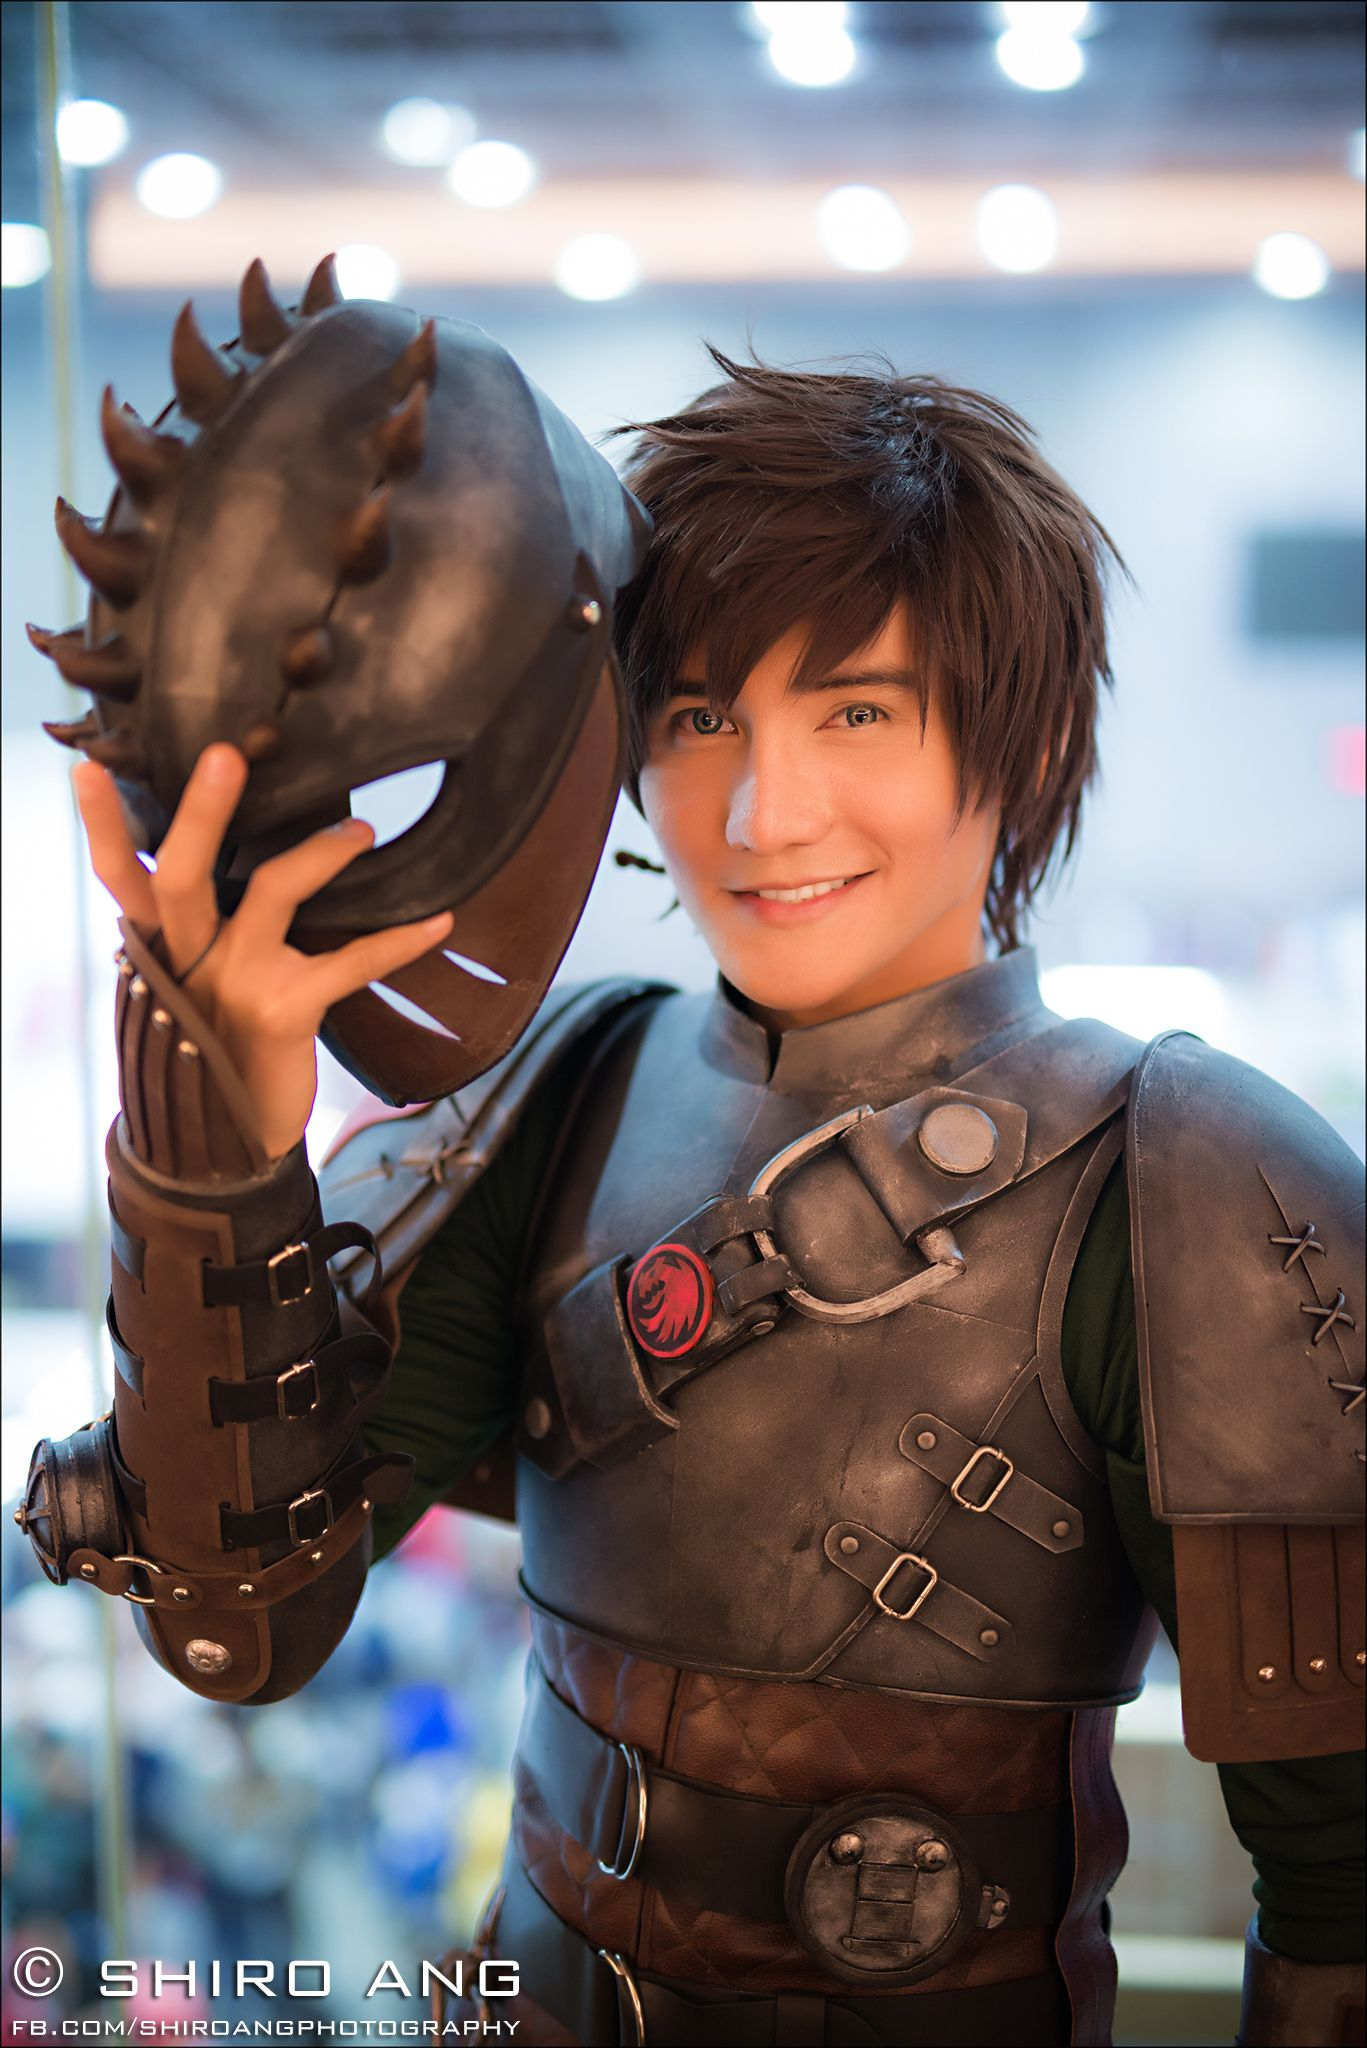 Liui Hiccup Cosplay Photo - WorldCosplay  d673e23336a9